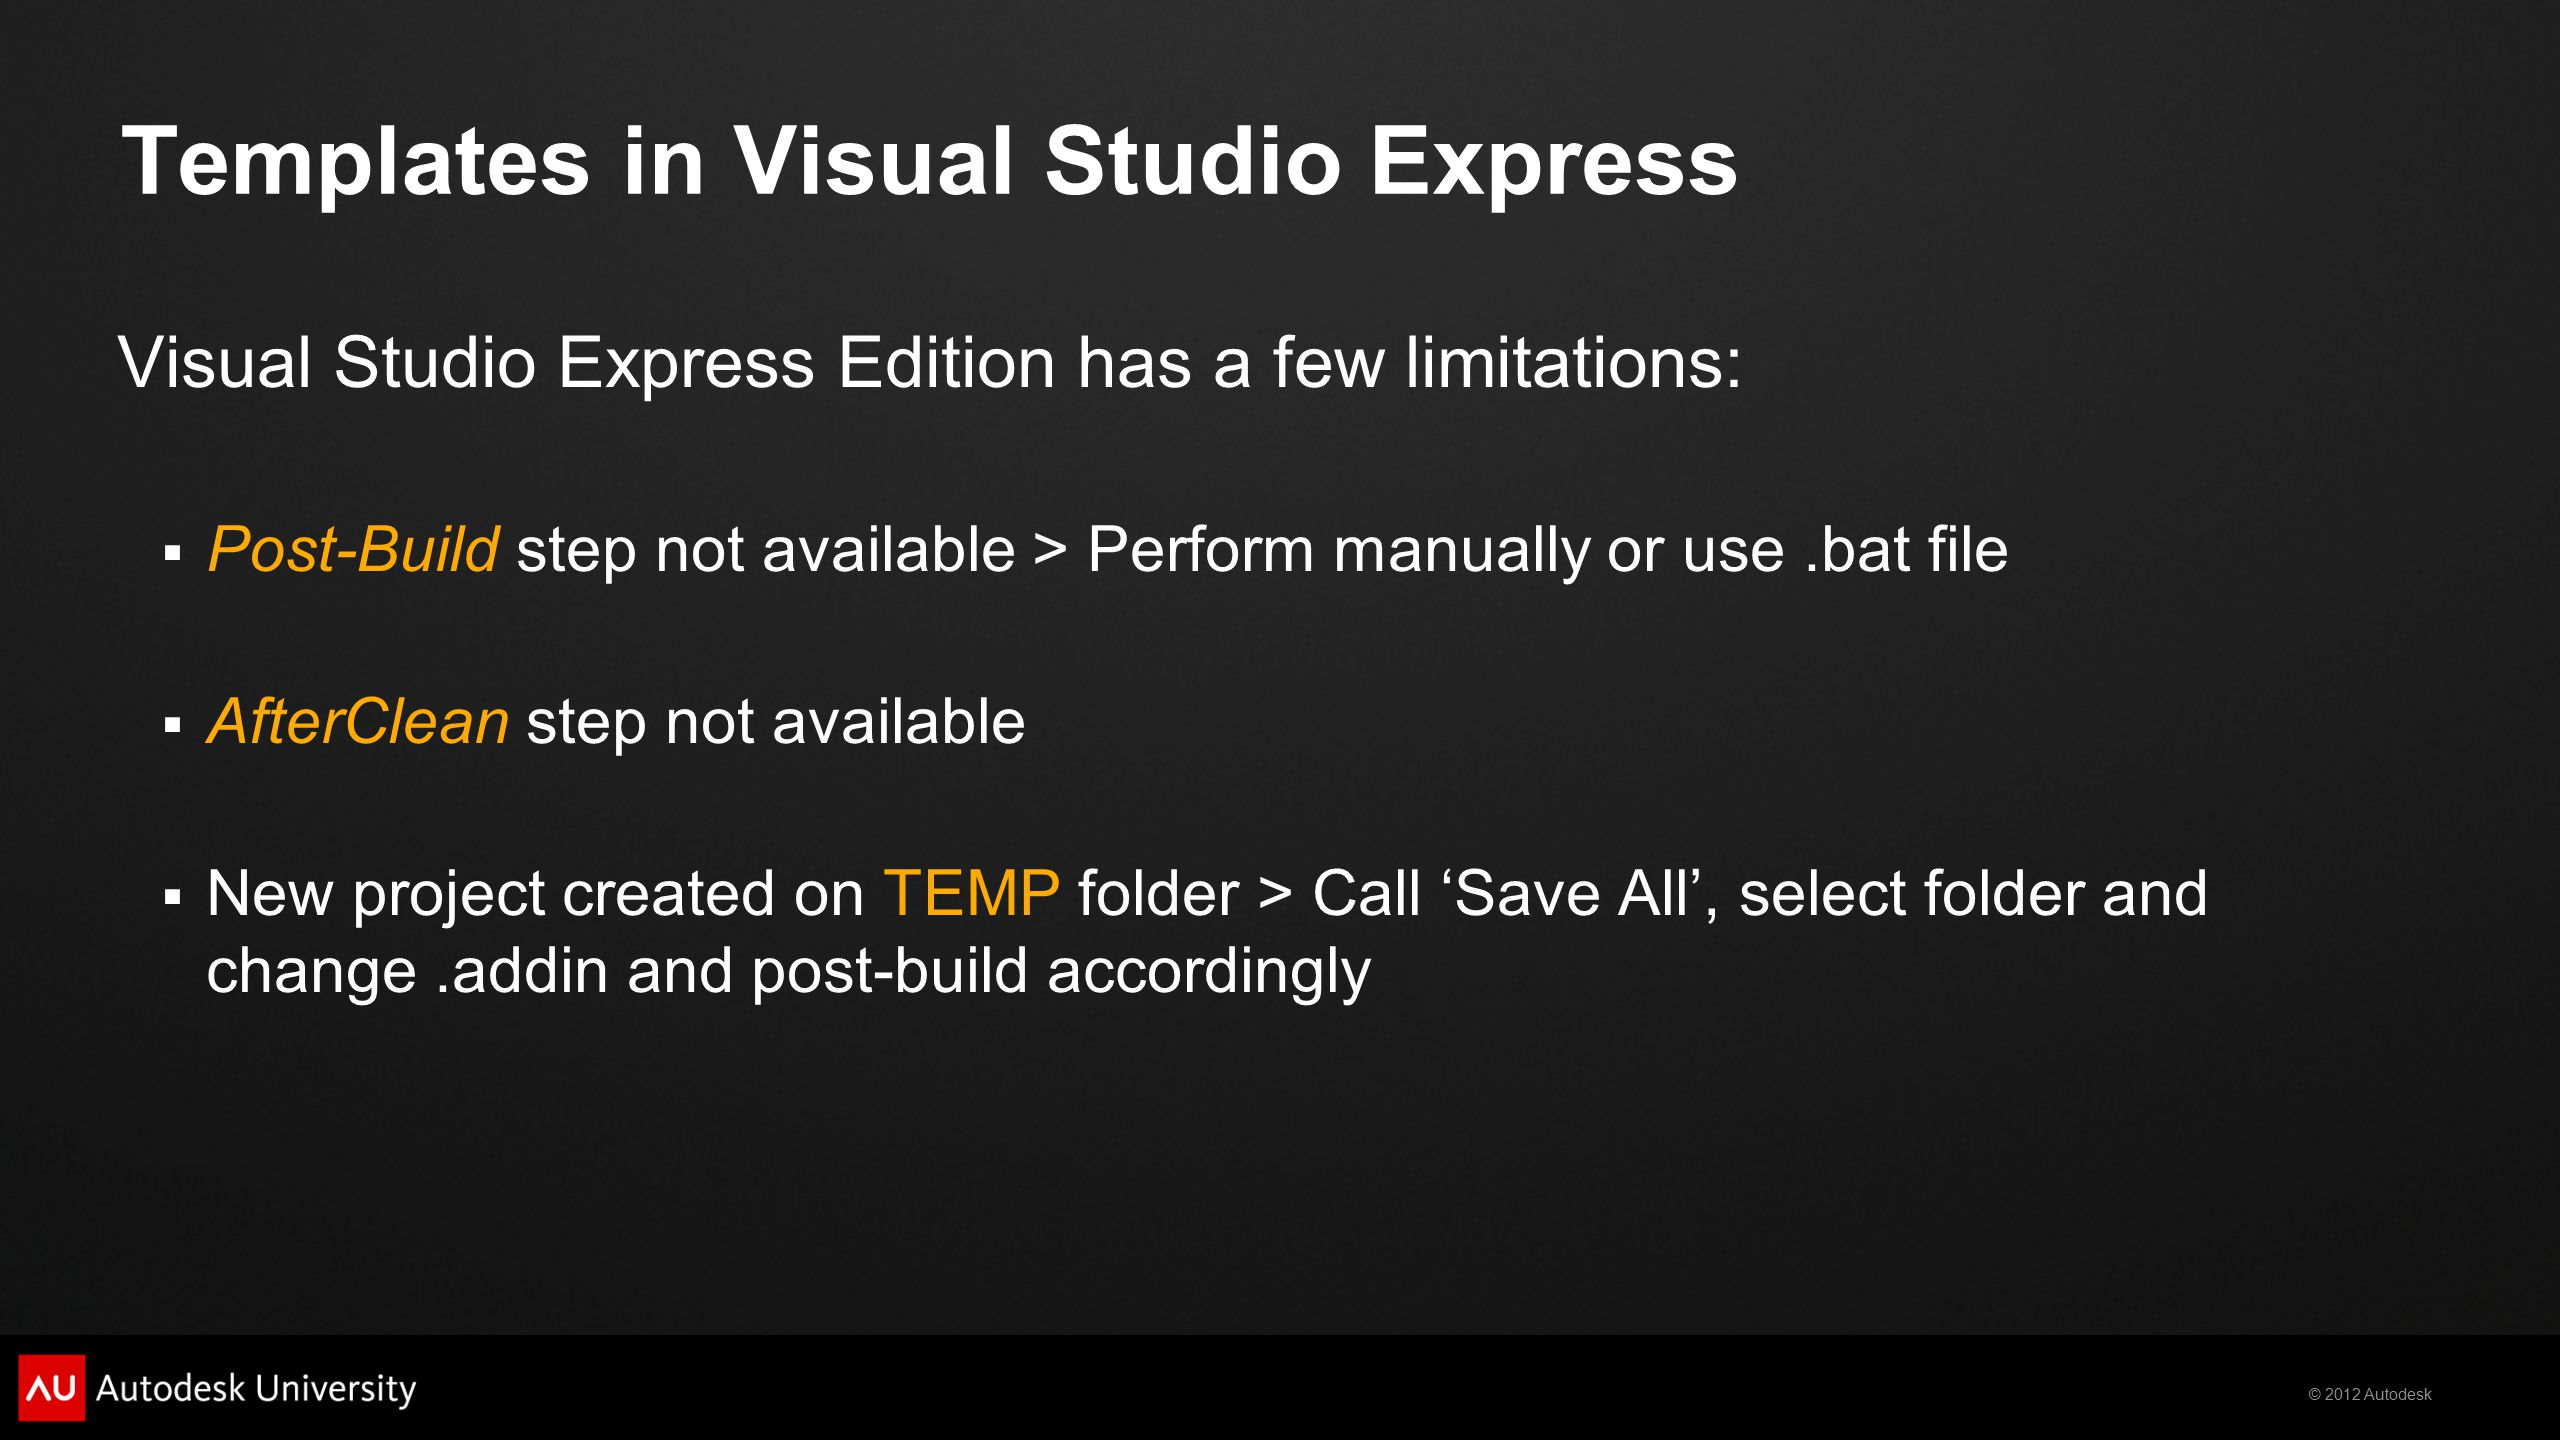 Templates in Visual Studio Express